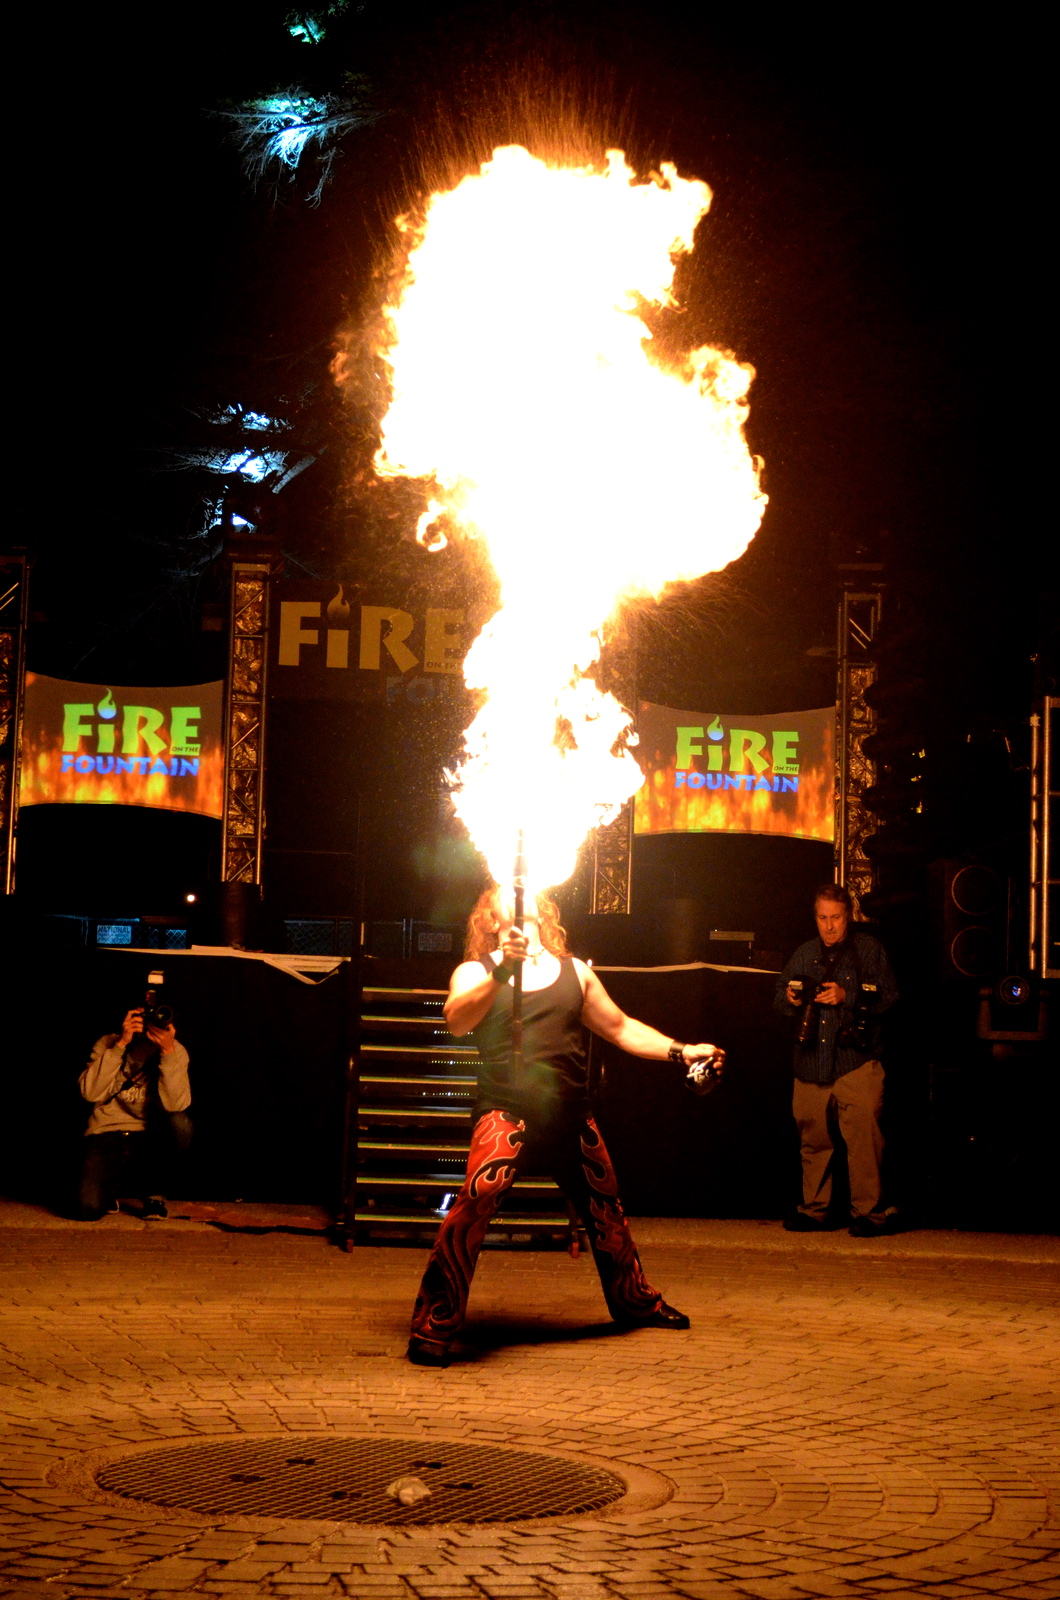 fire acrobat acts  at the circus in your own backyard